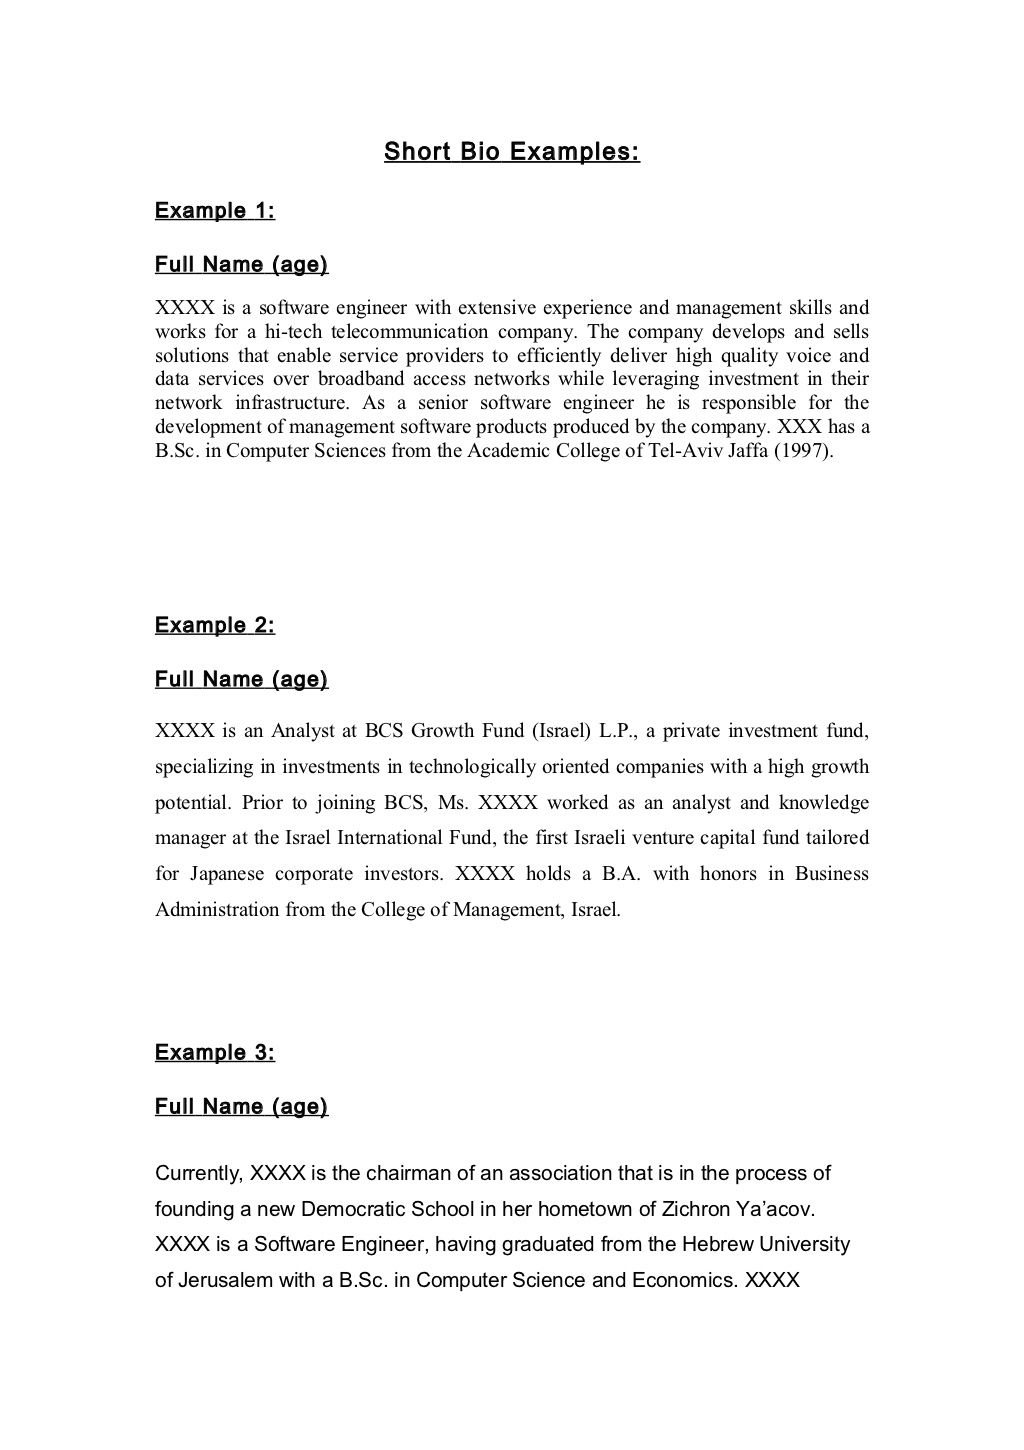 006 Essay Example Short Breathtaking Examples For Students Argumentative High School Full